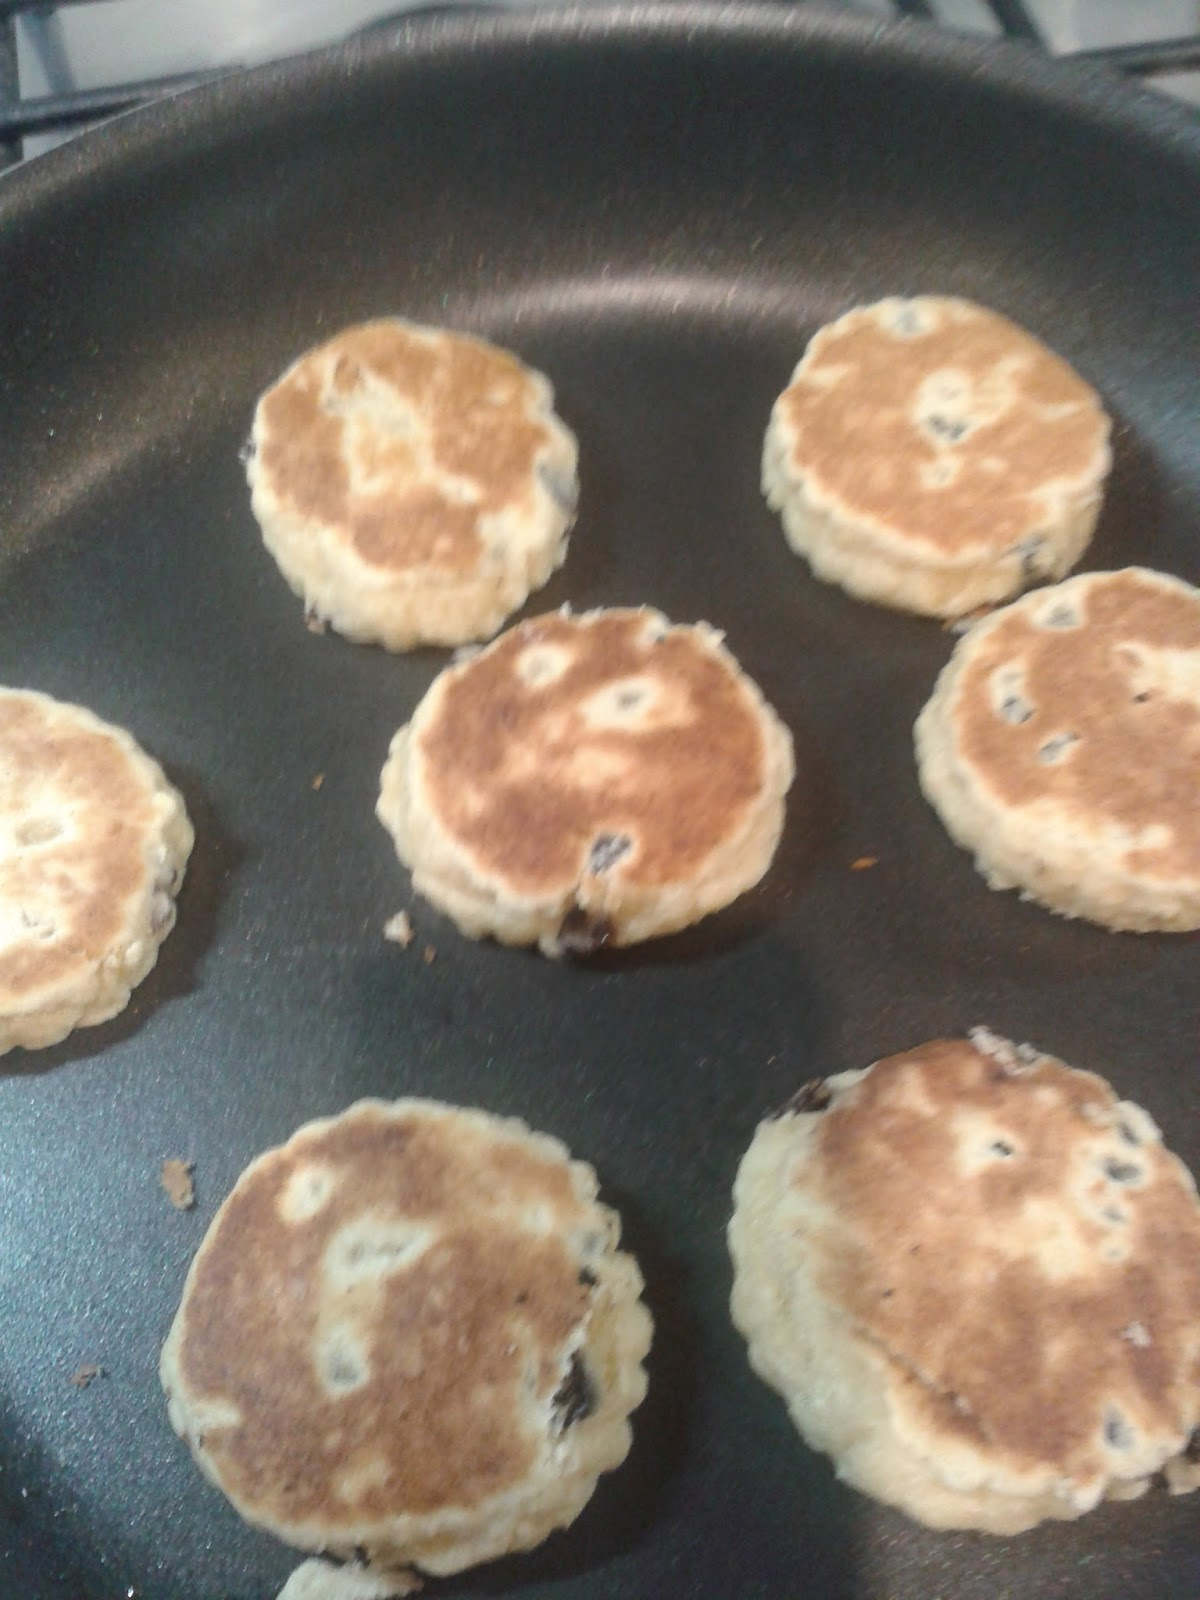 Welsh cakes recipe - the finished cakes